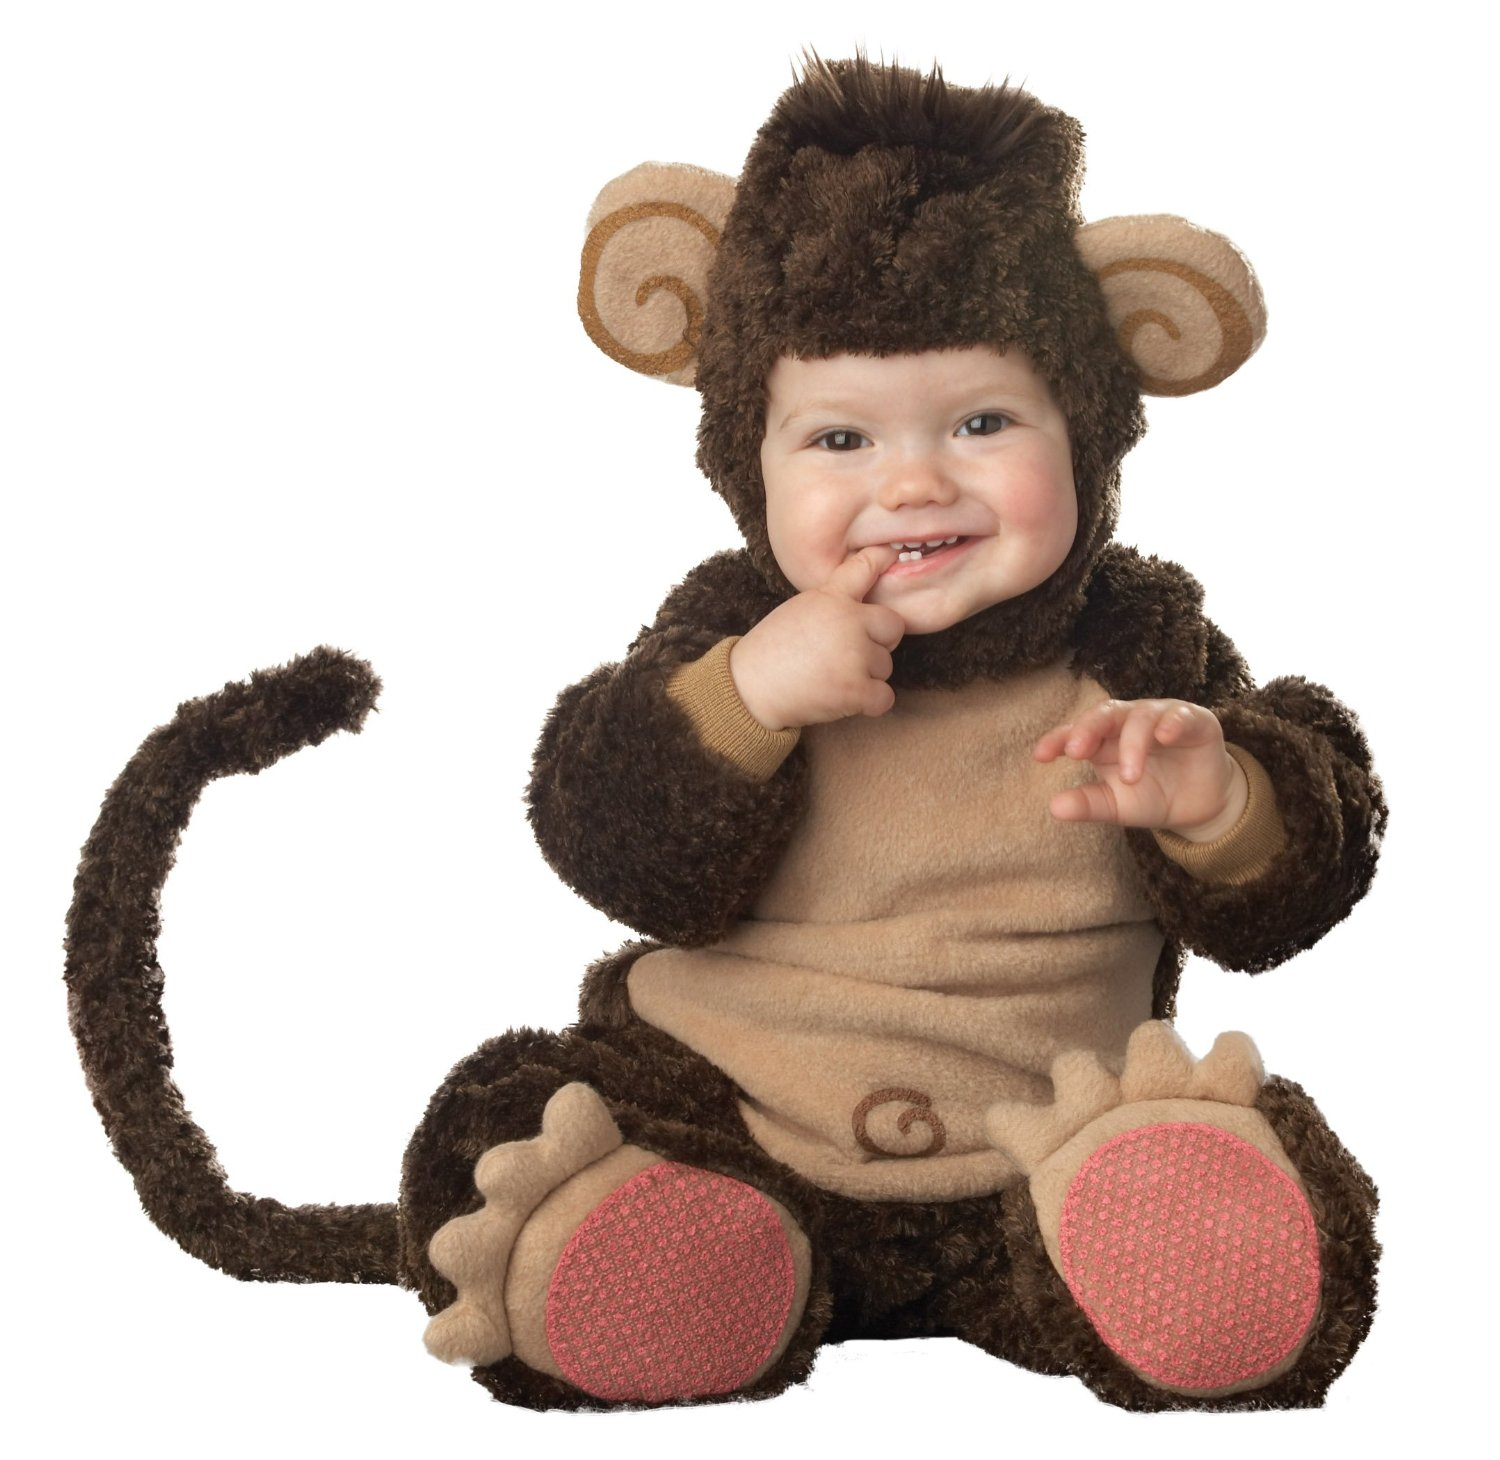 The Best Baby Halloween Costume of 2012 Monkey